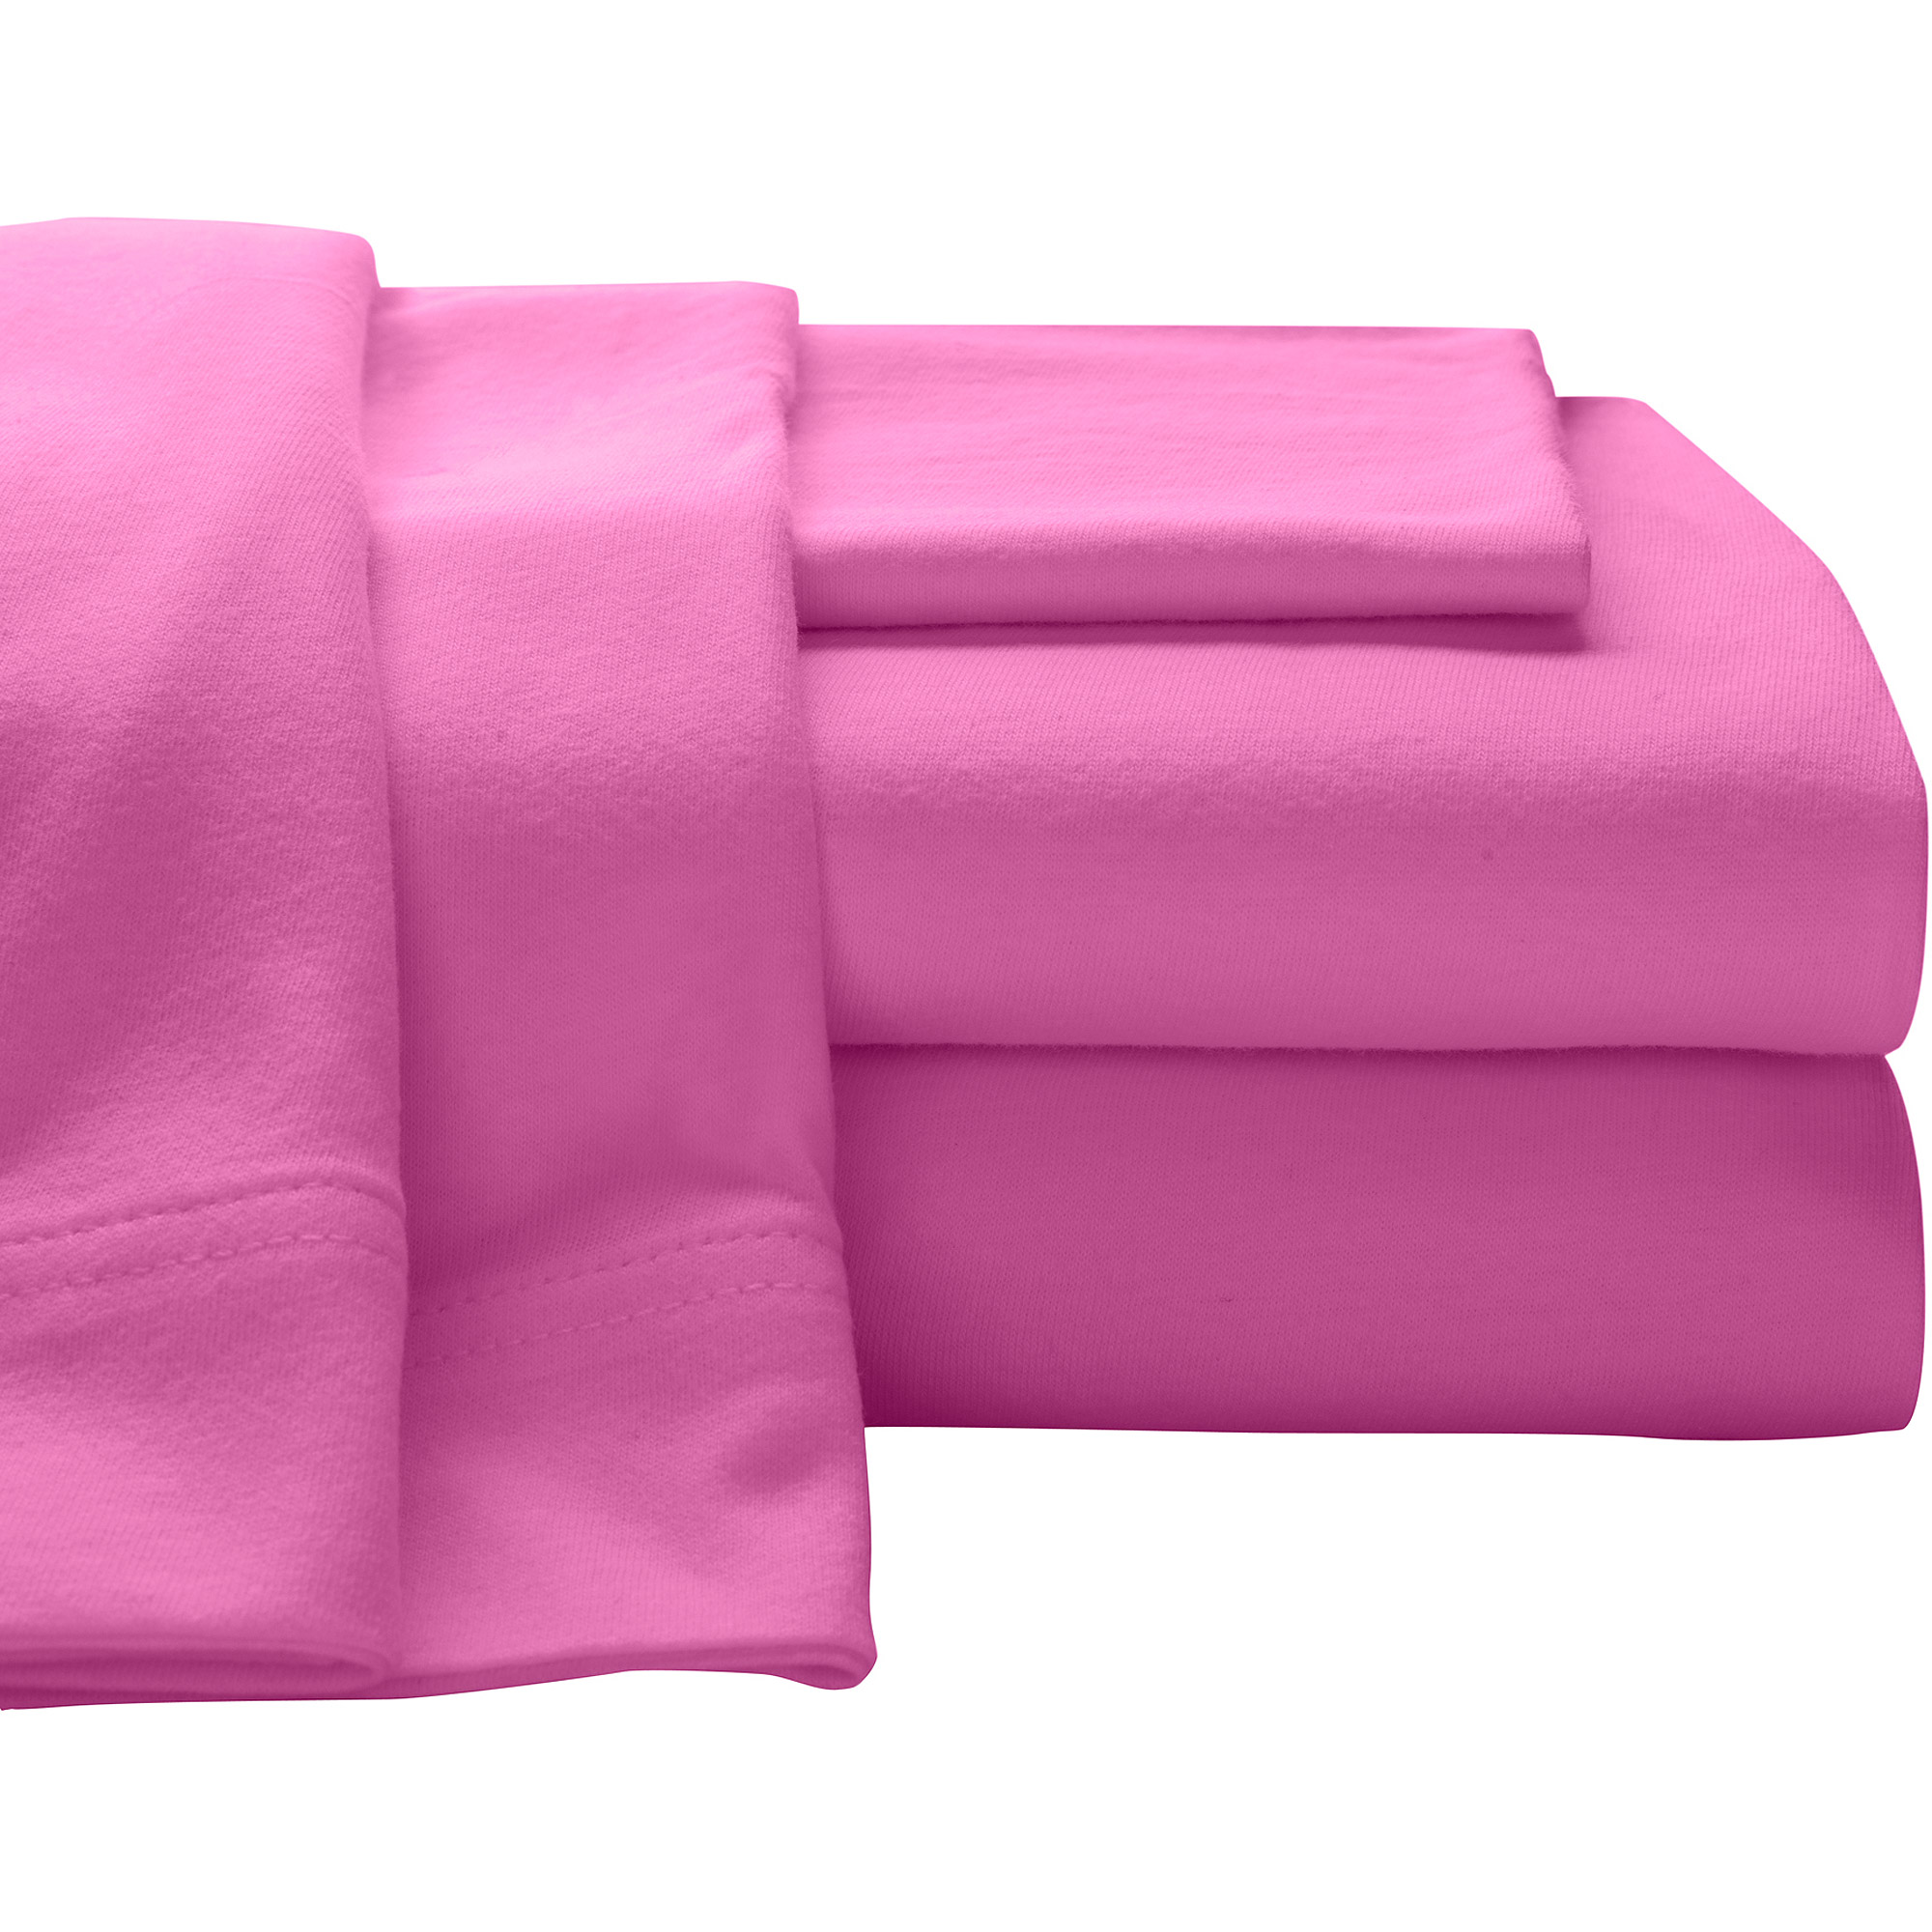 High Quality Super Soft 100% Cotton Jersey Sheet Set